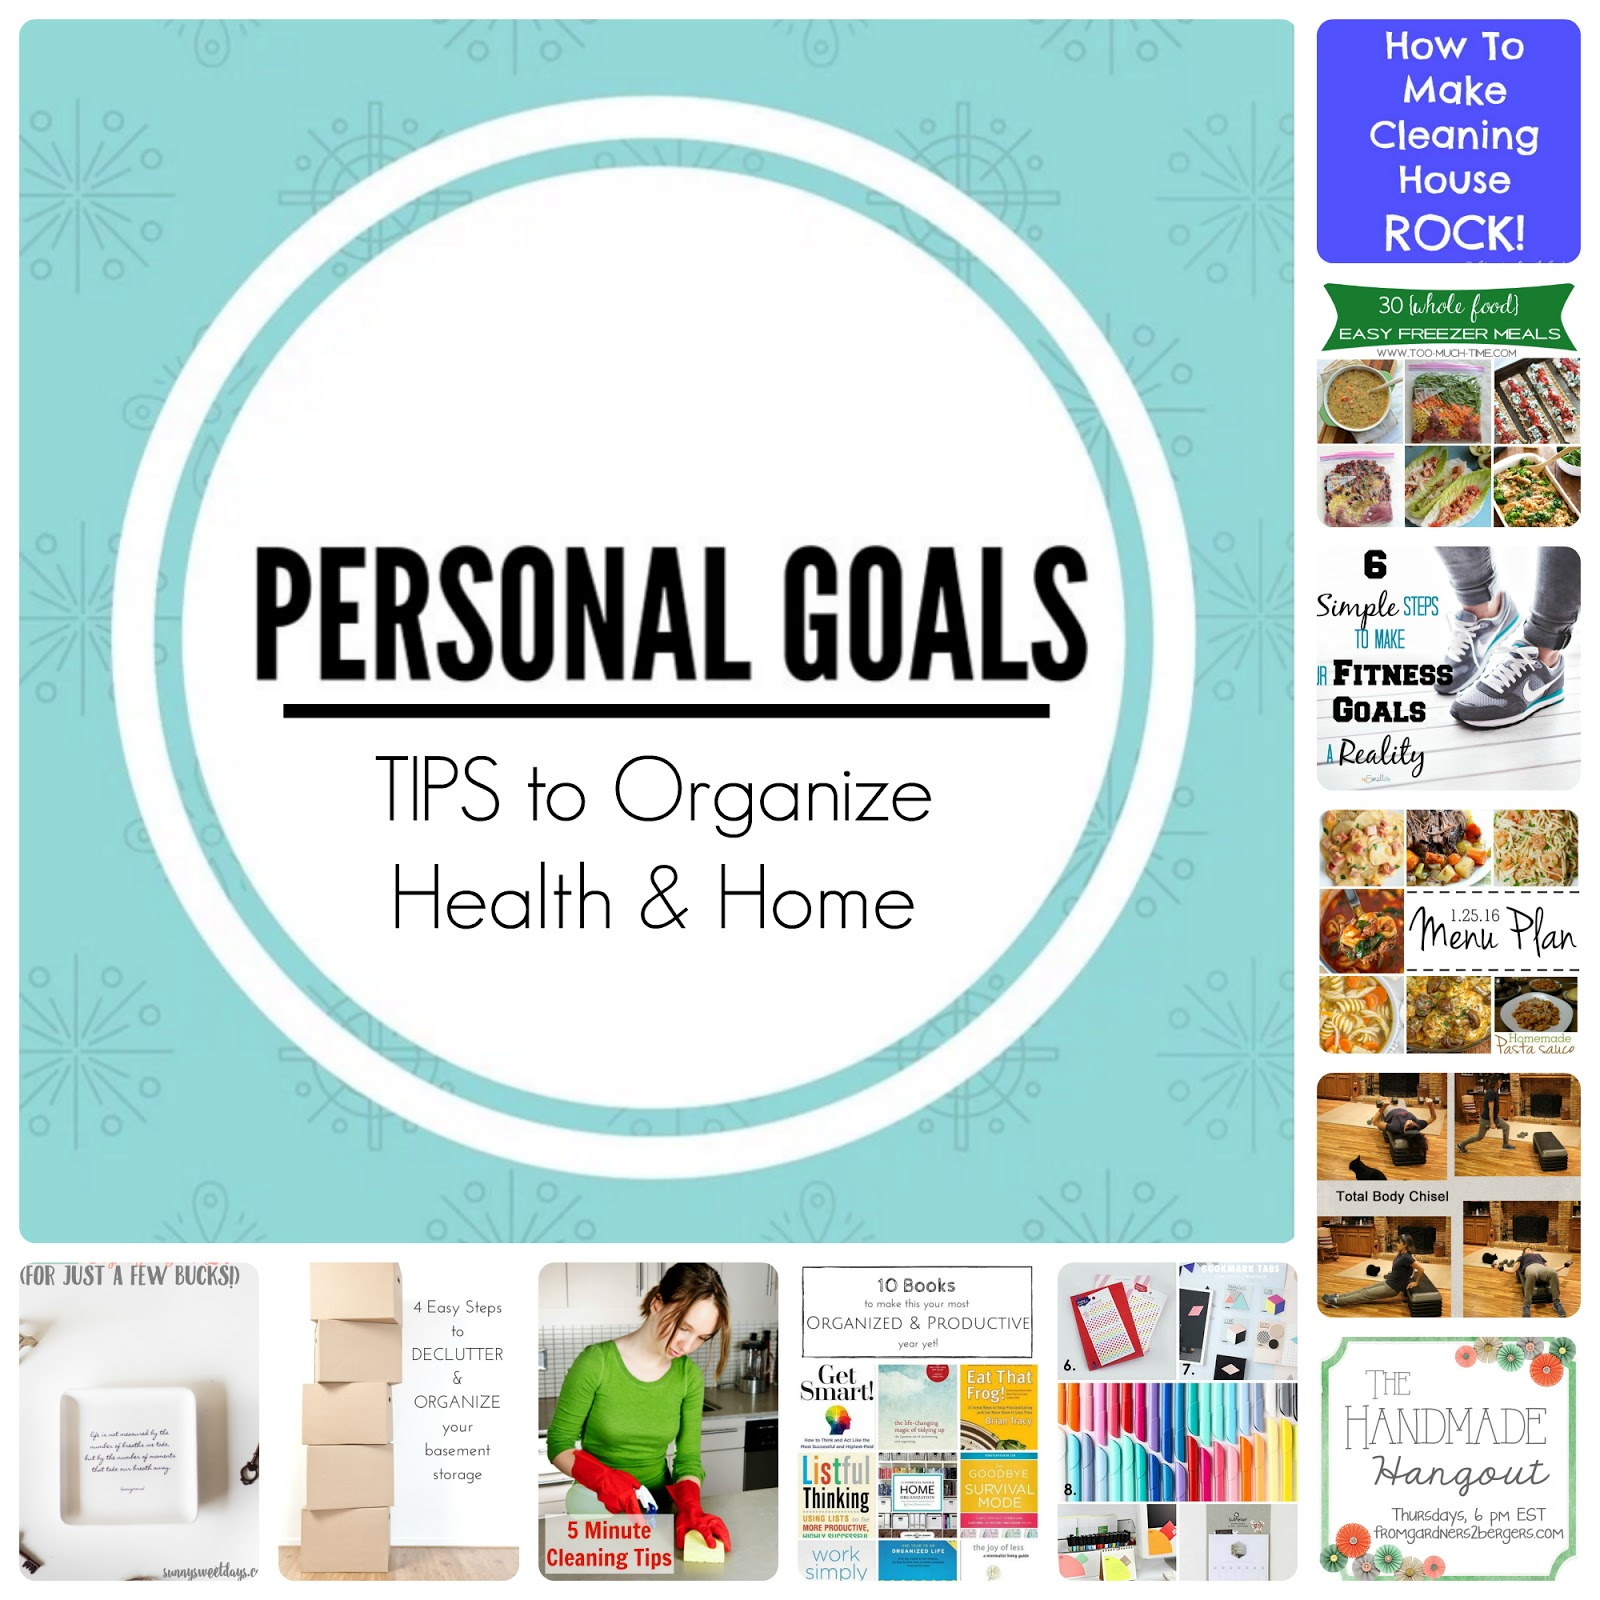 Personal Health: From Gardners 2 Bergers: The Handmade Hangout Features